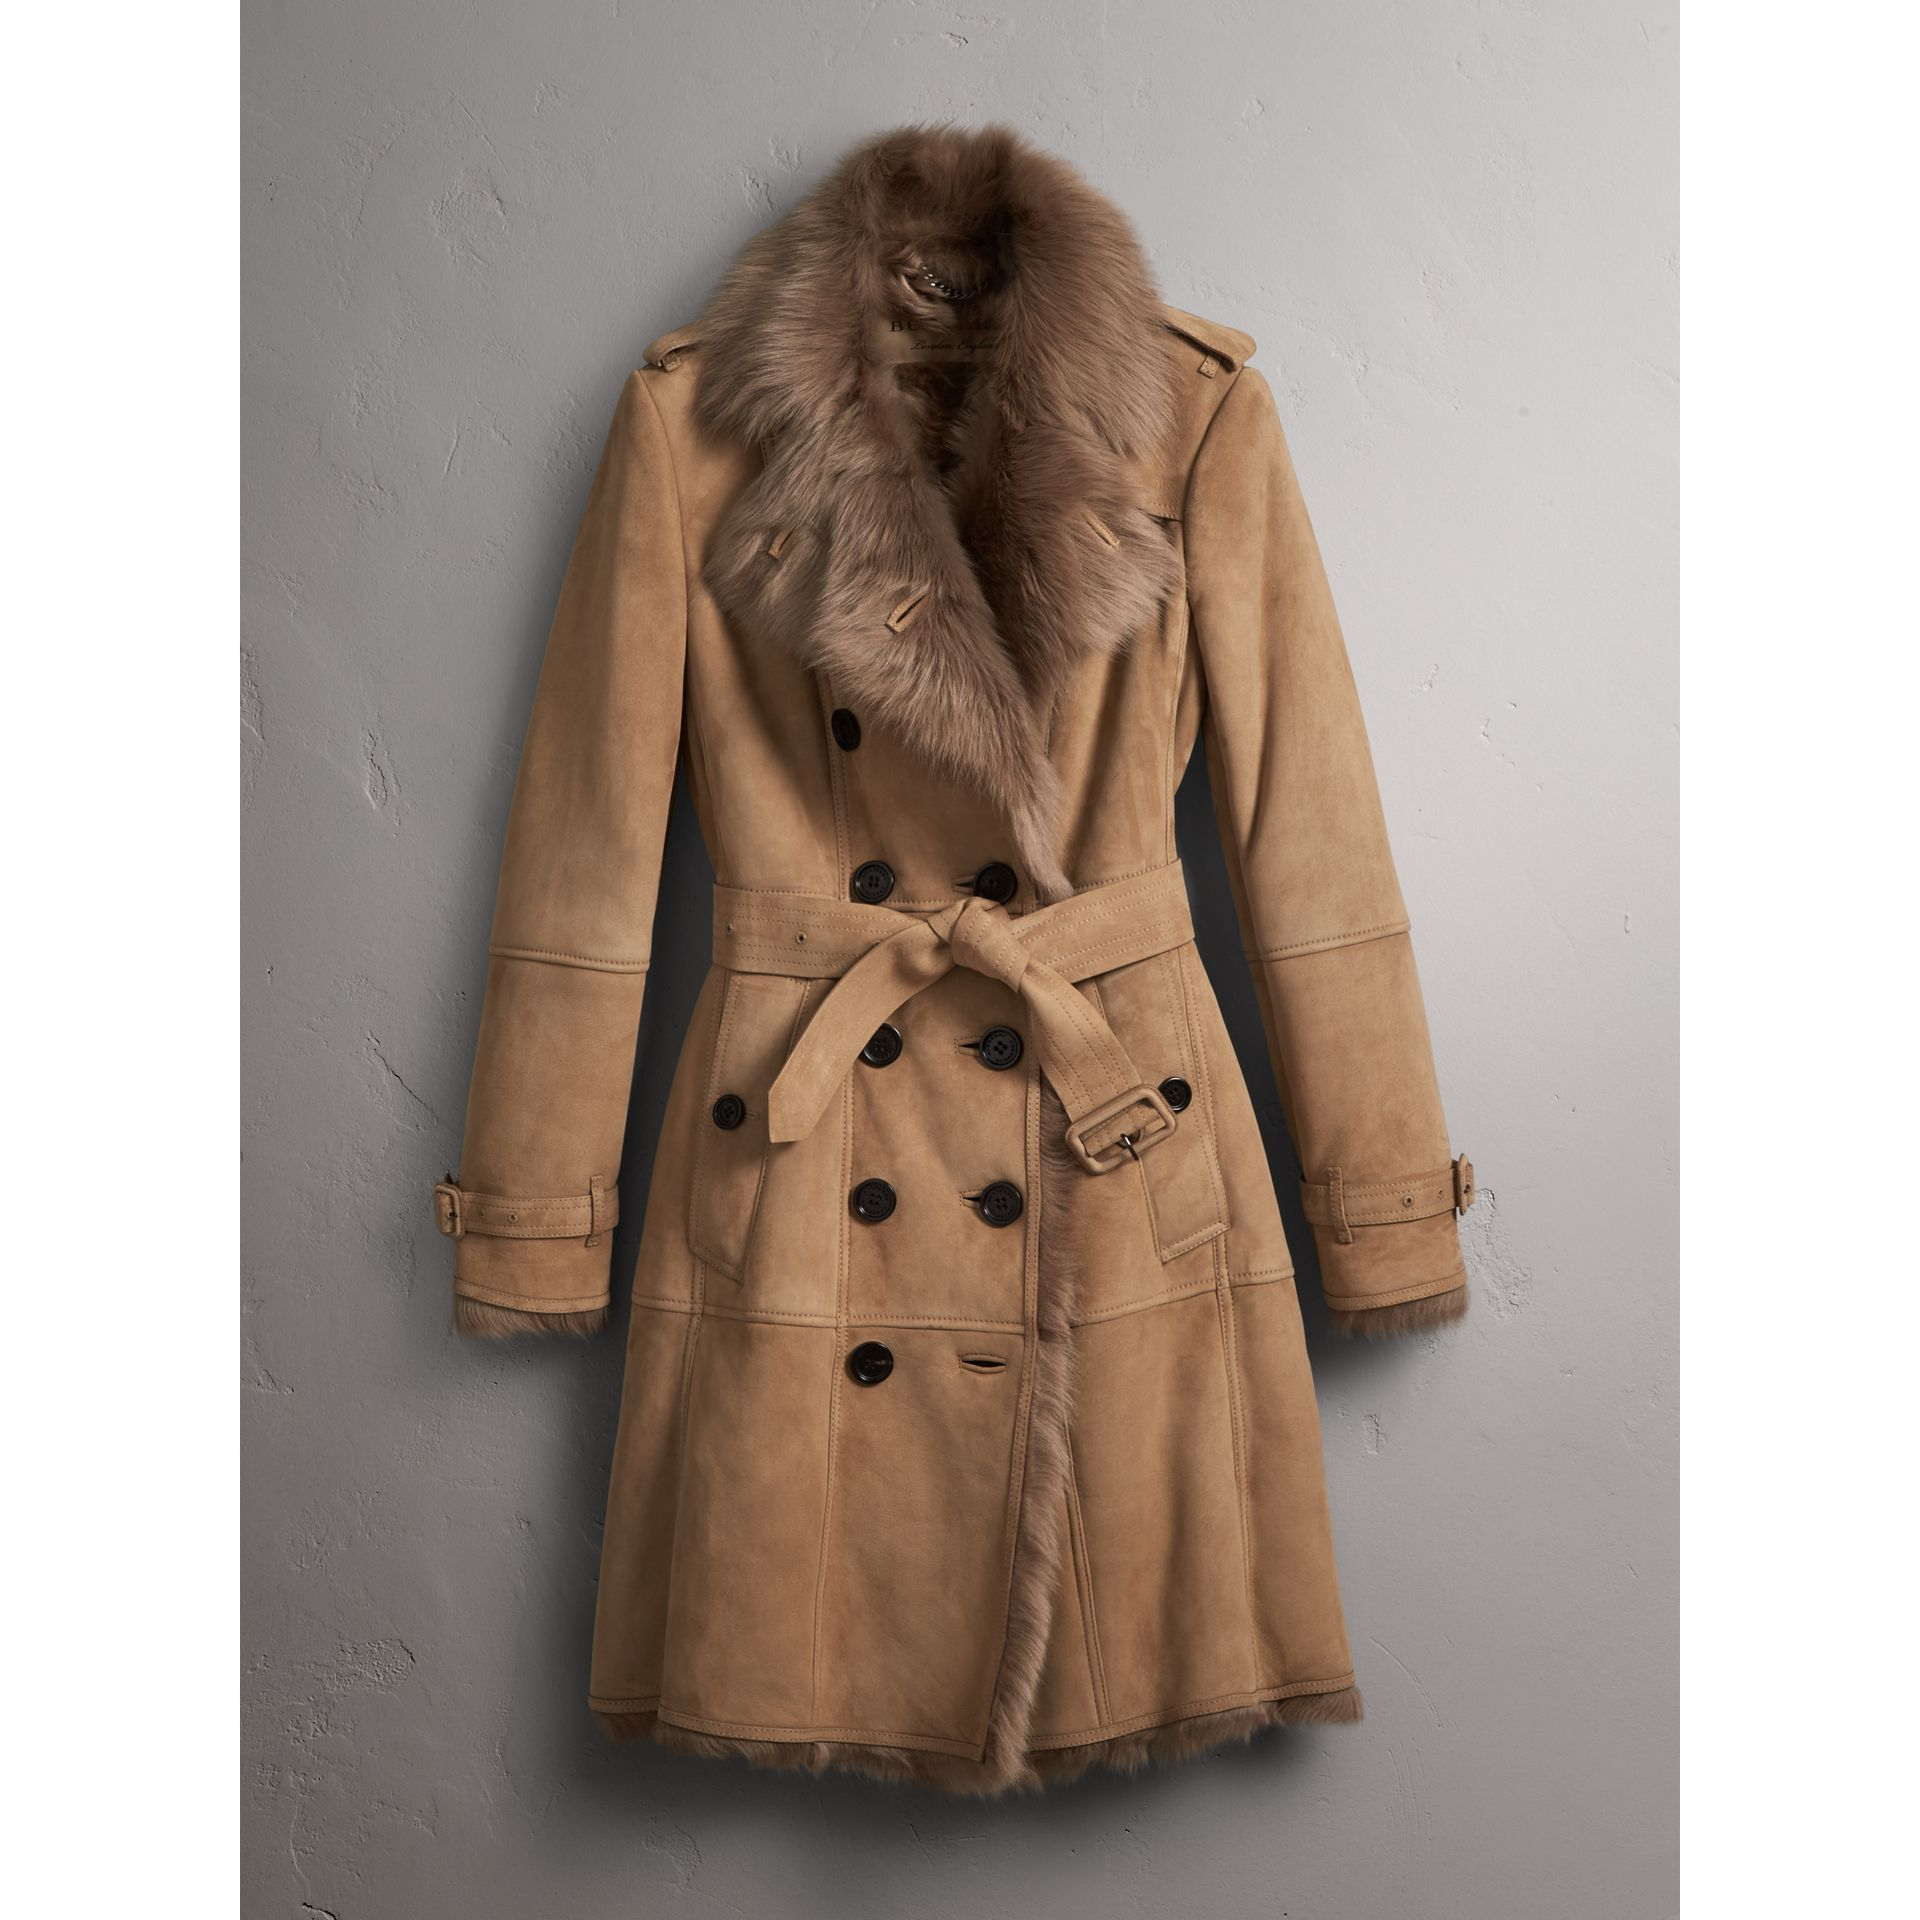 Shearling Trench Coat in Camel - Women | Burberry Hong Kong - gallery image 4